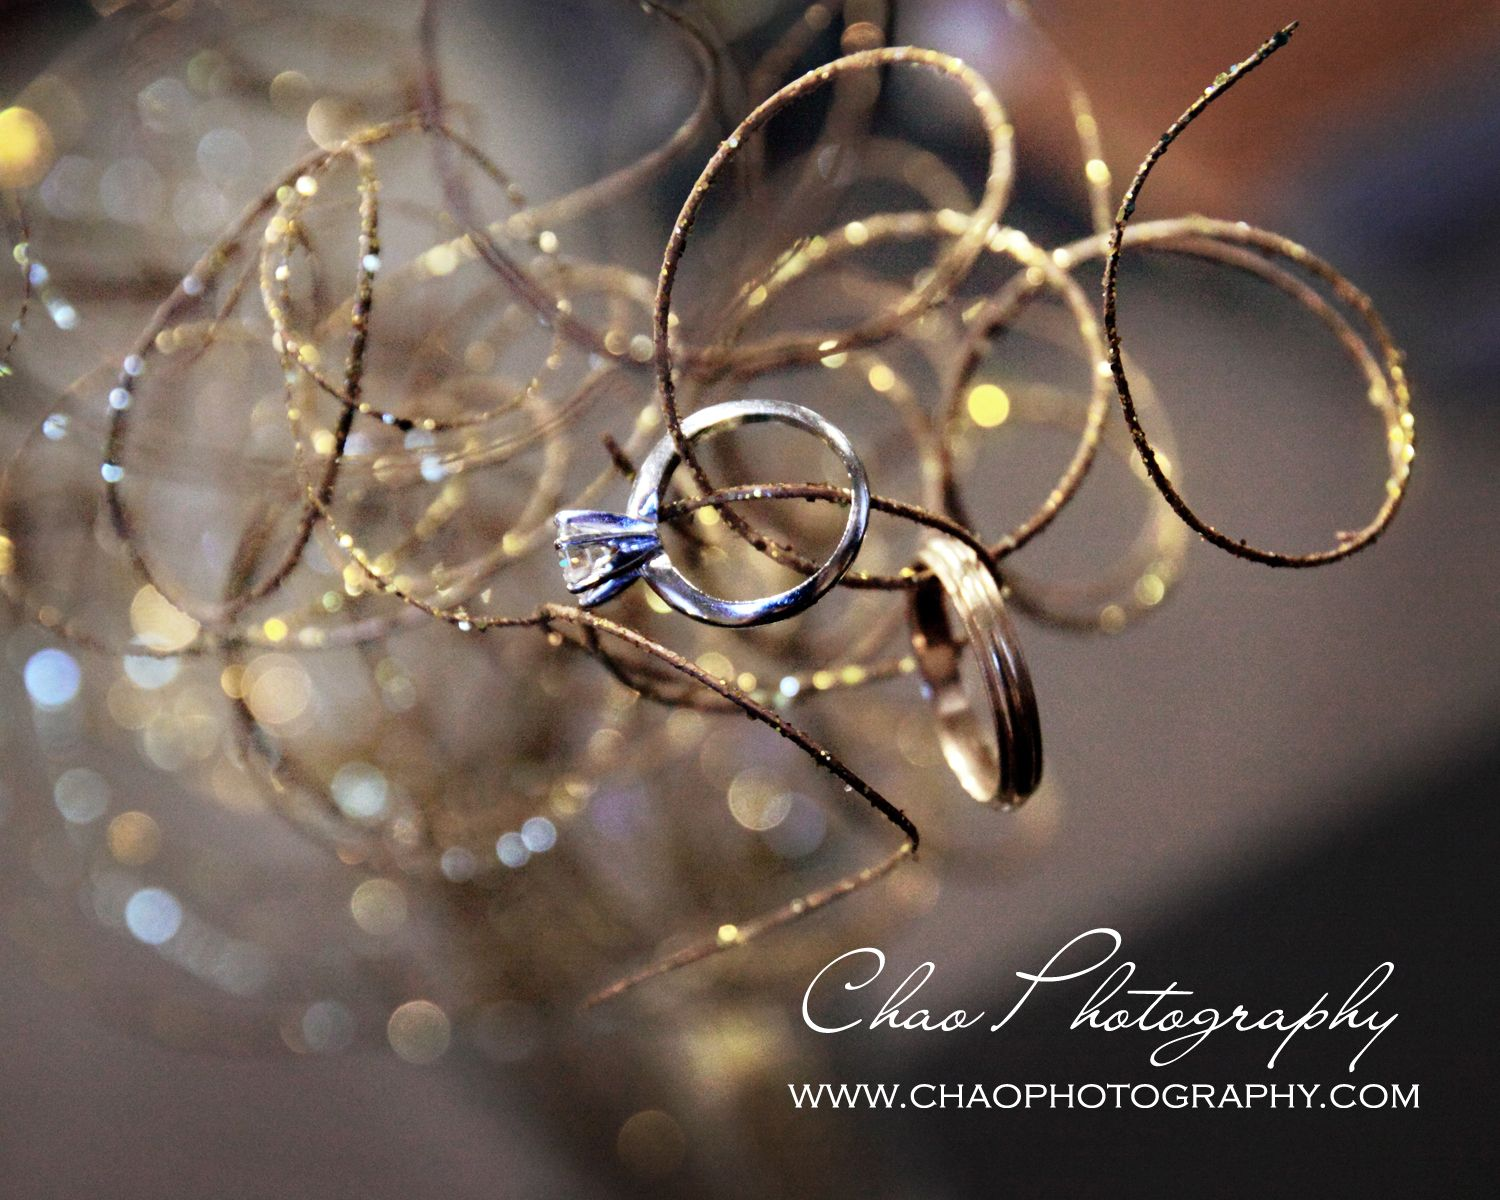 Pin By Jeff Chao On Wedding And Engagement Photography